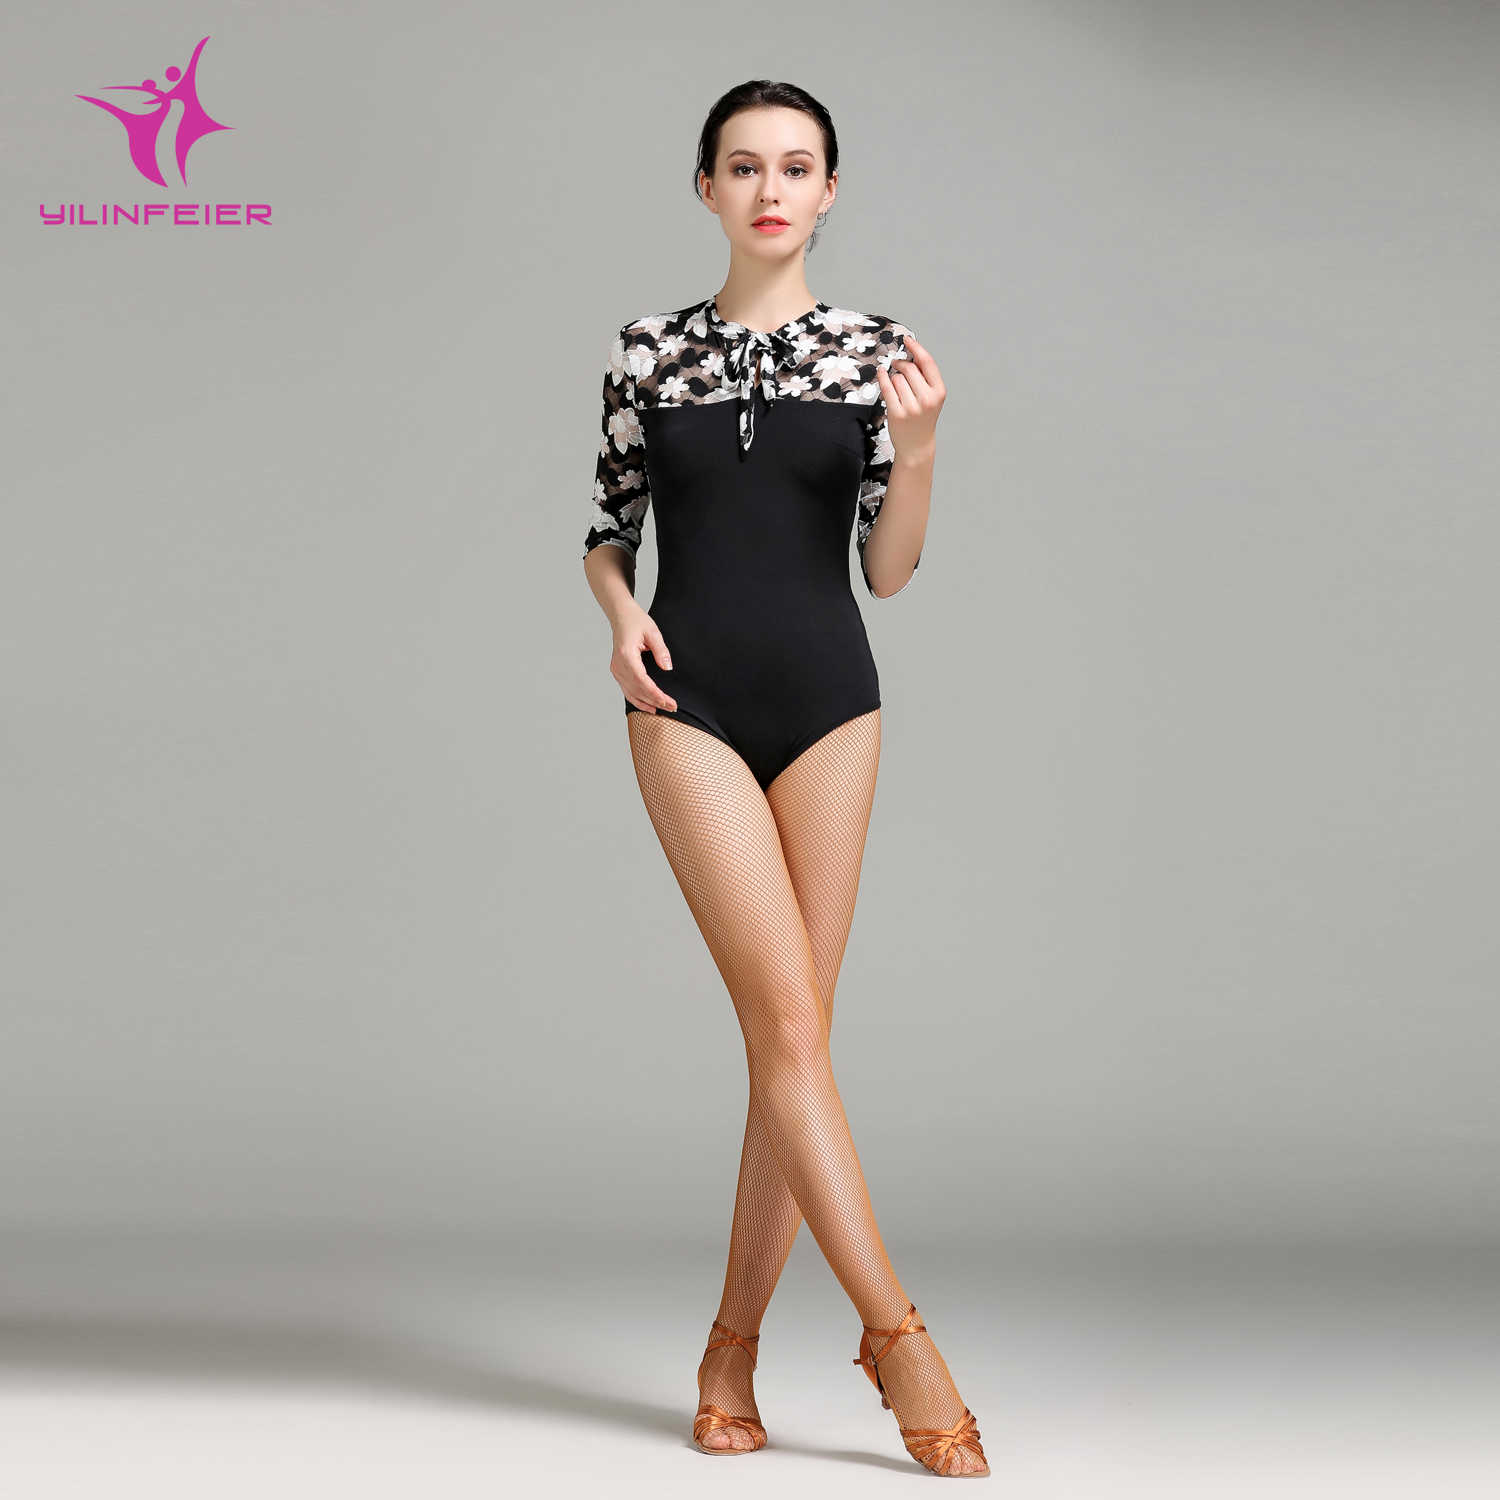 superior quality coupon code new specials YILINFEIER 1709 Latin Modern Dance Top Waltzing Tango Cha Cha Bally  Ballroom Costume Leotard Women Lady Evening Party Dress Top